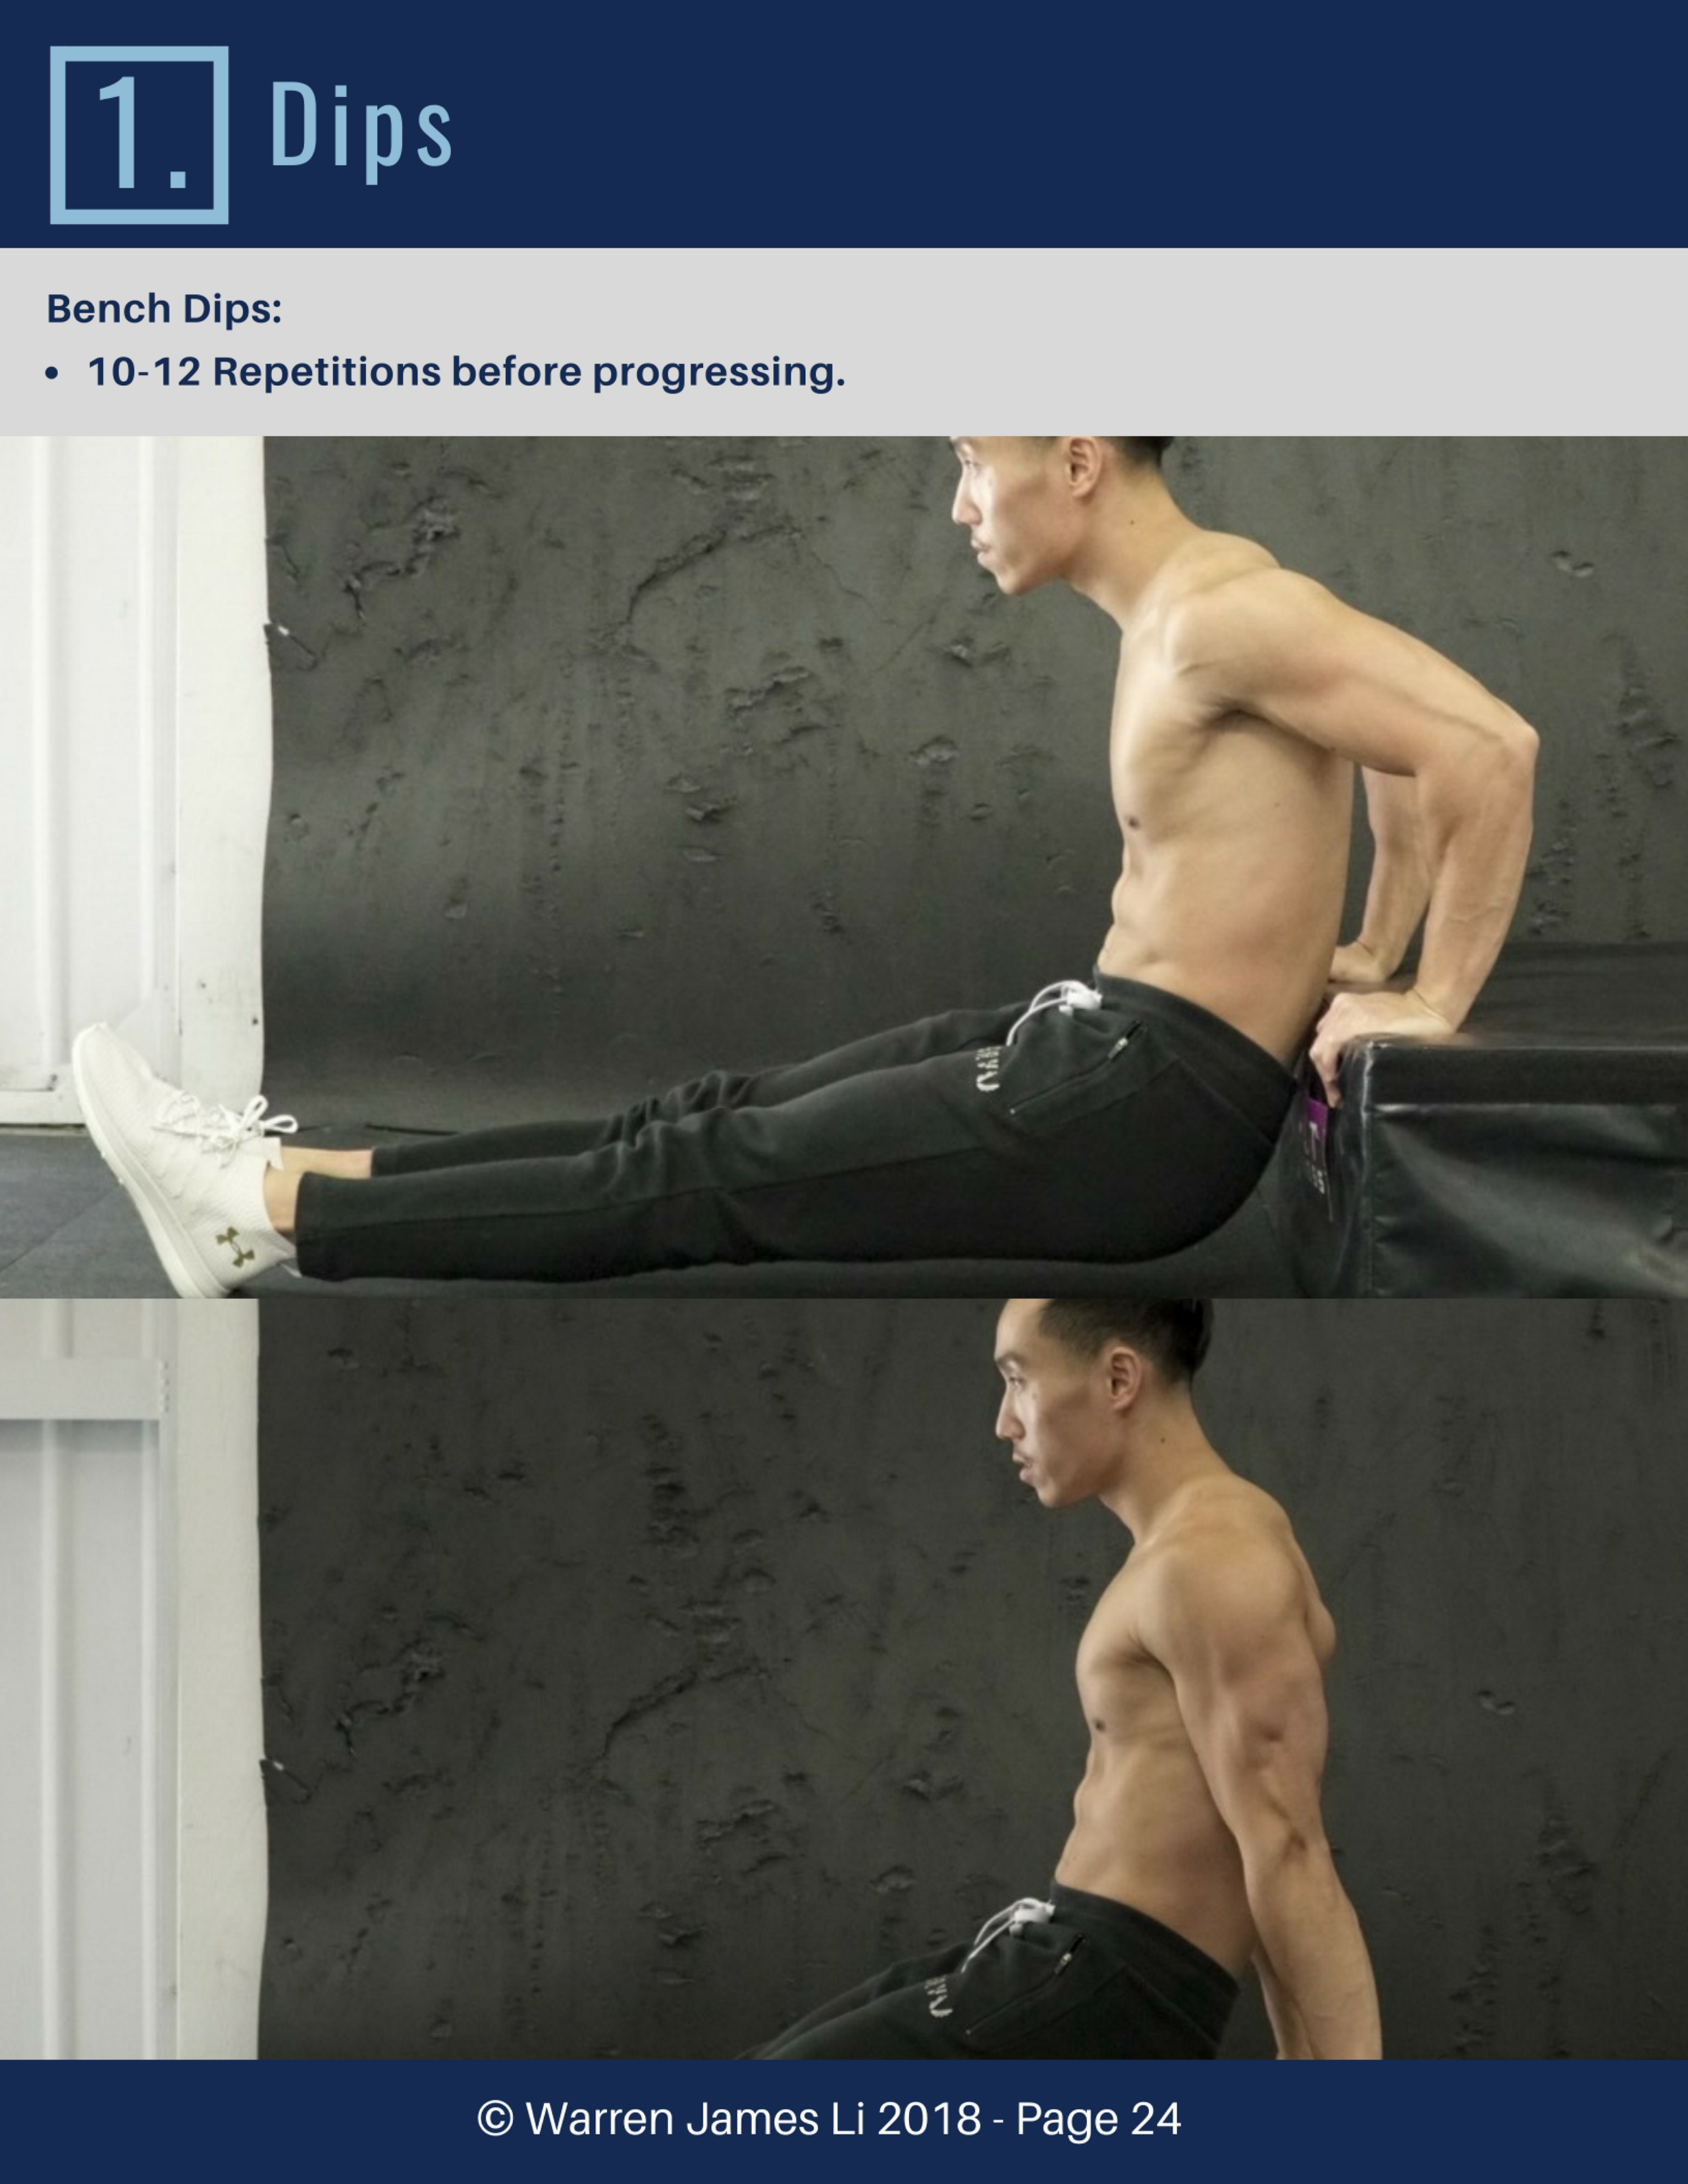 4. Dips 9 Exercises To Get Strong With Calisthenics.png